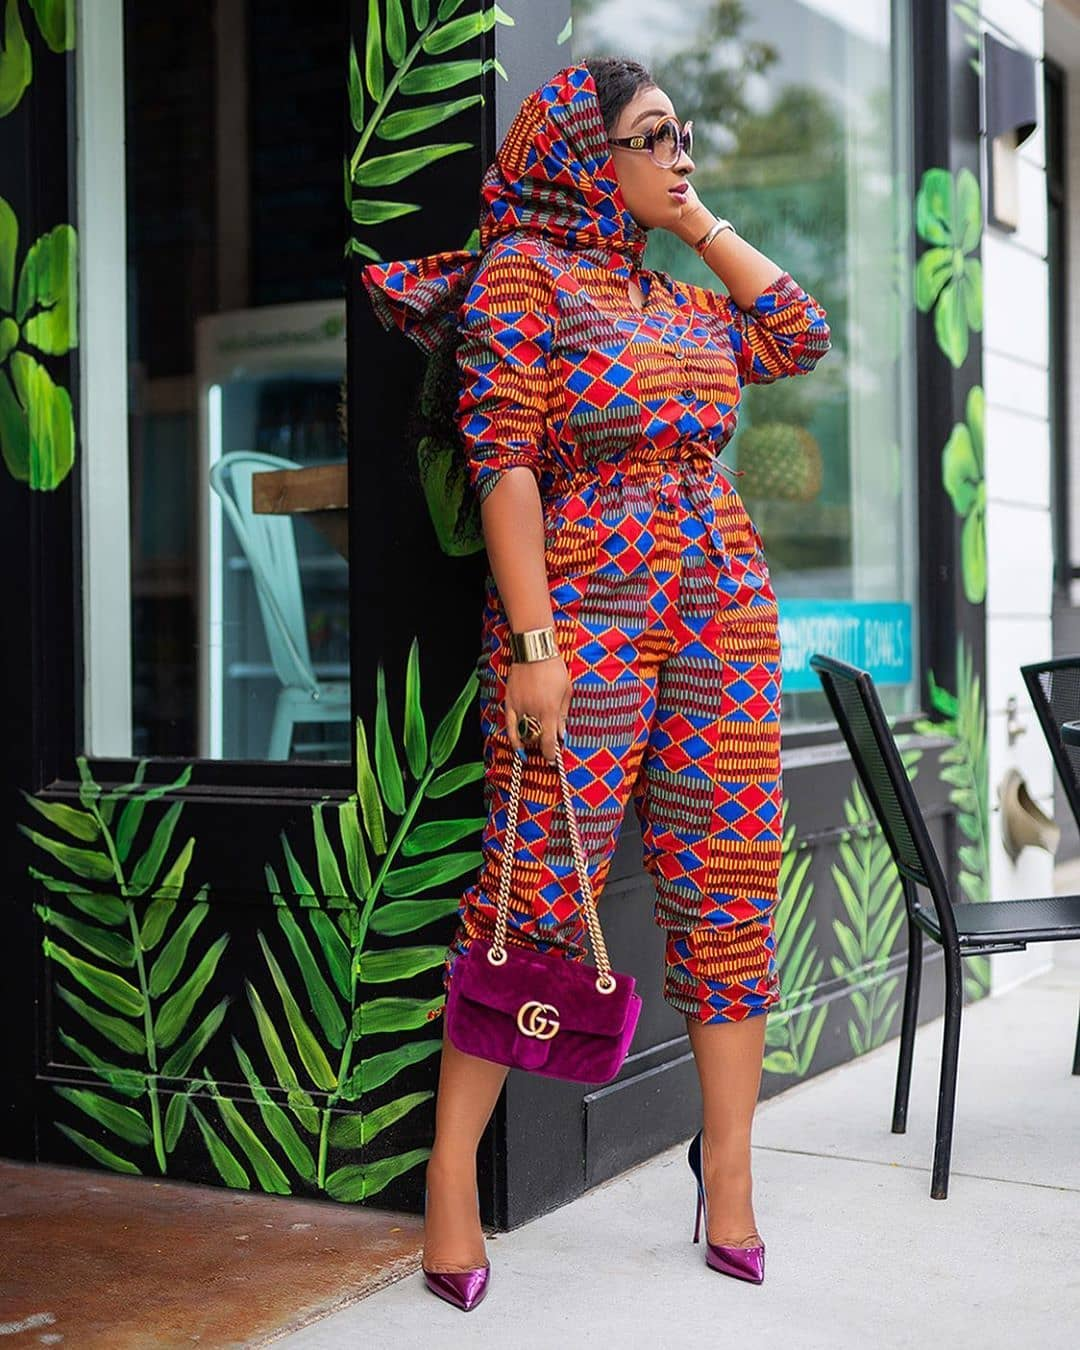 CURRENT ANKARA PANTS:LATEST FASHION TRENDS FOR WOMEN 1